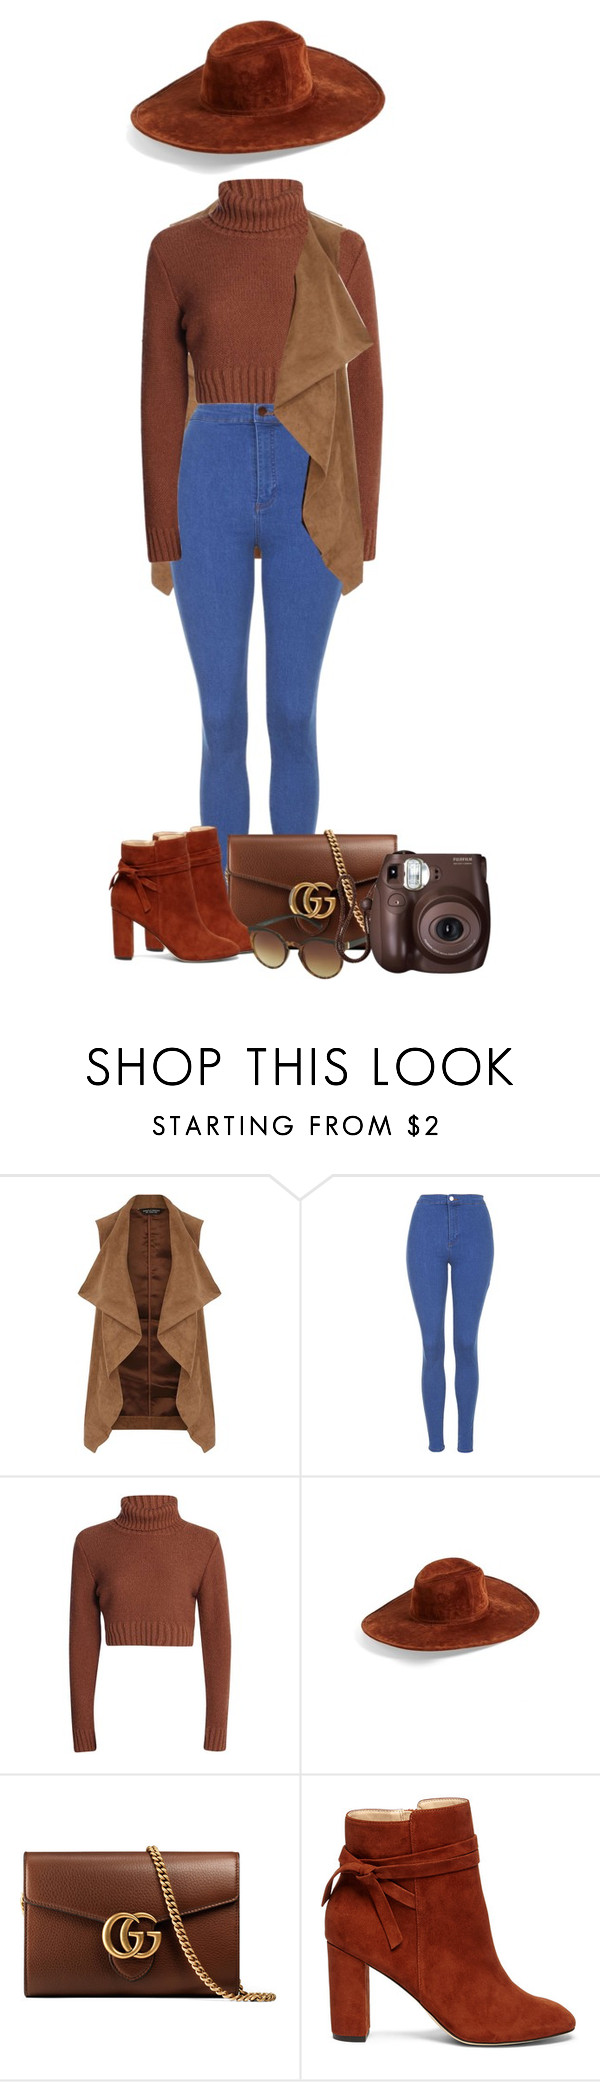 """Untitled #632"" by dida-zalesakova ❤ liked on Polyvore featuring Dorothy Perkins, Topshop, Hinge, Gucci, Sole Society and Fujifilm"